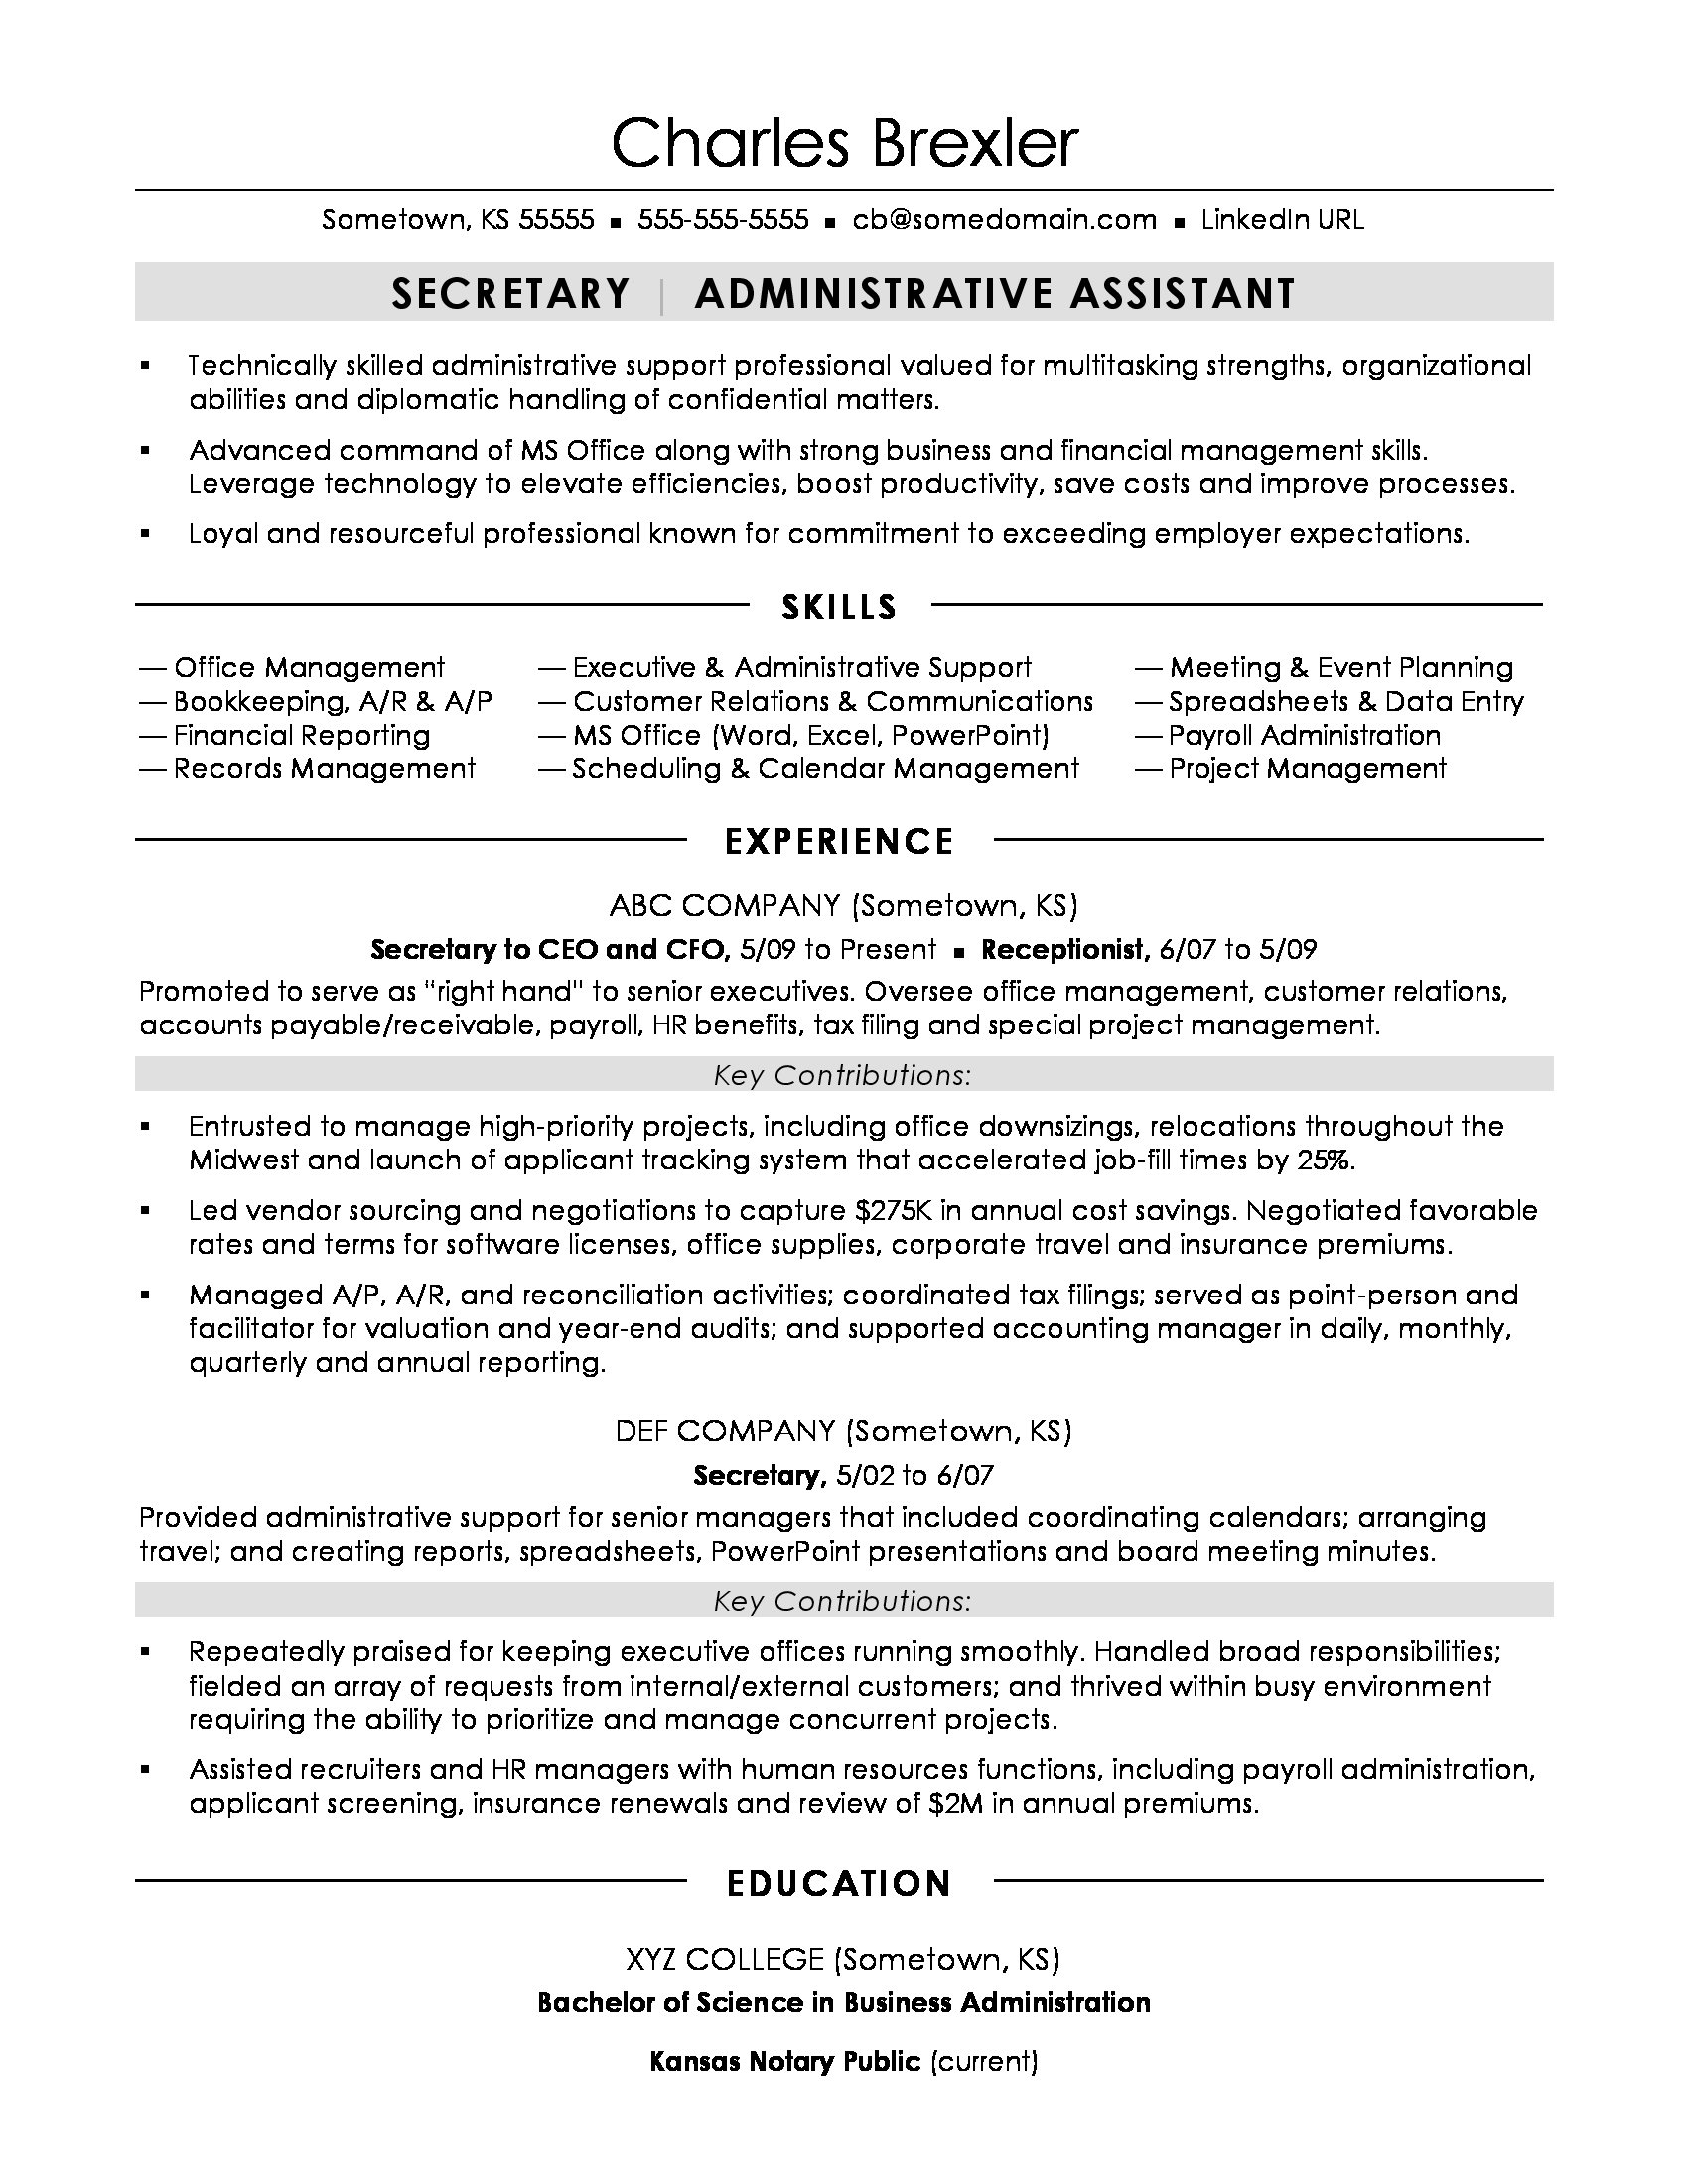 Secretary Resume Sample  Payroll Resume Sample